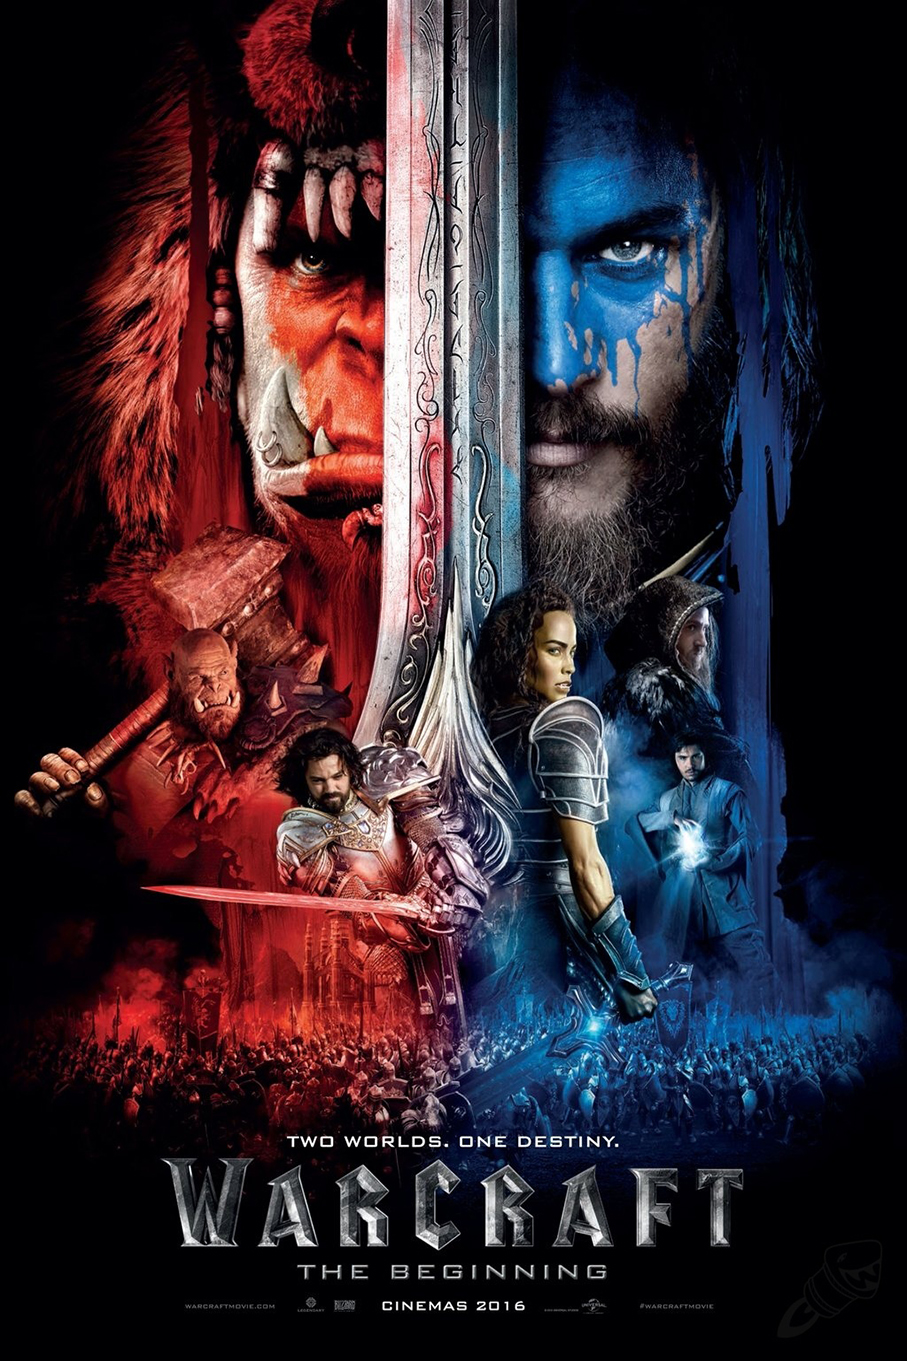 Warcraft [2016 USA, Canada & China Movie] Action, Adventure, Fantasy